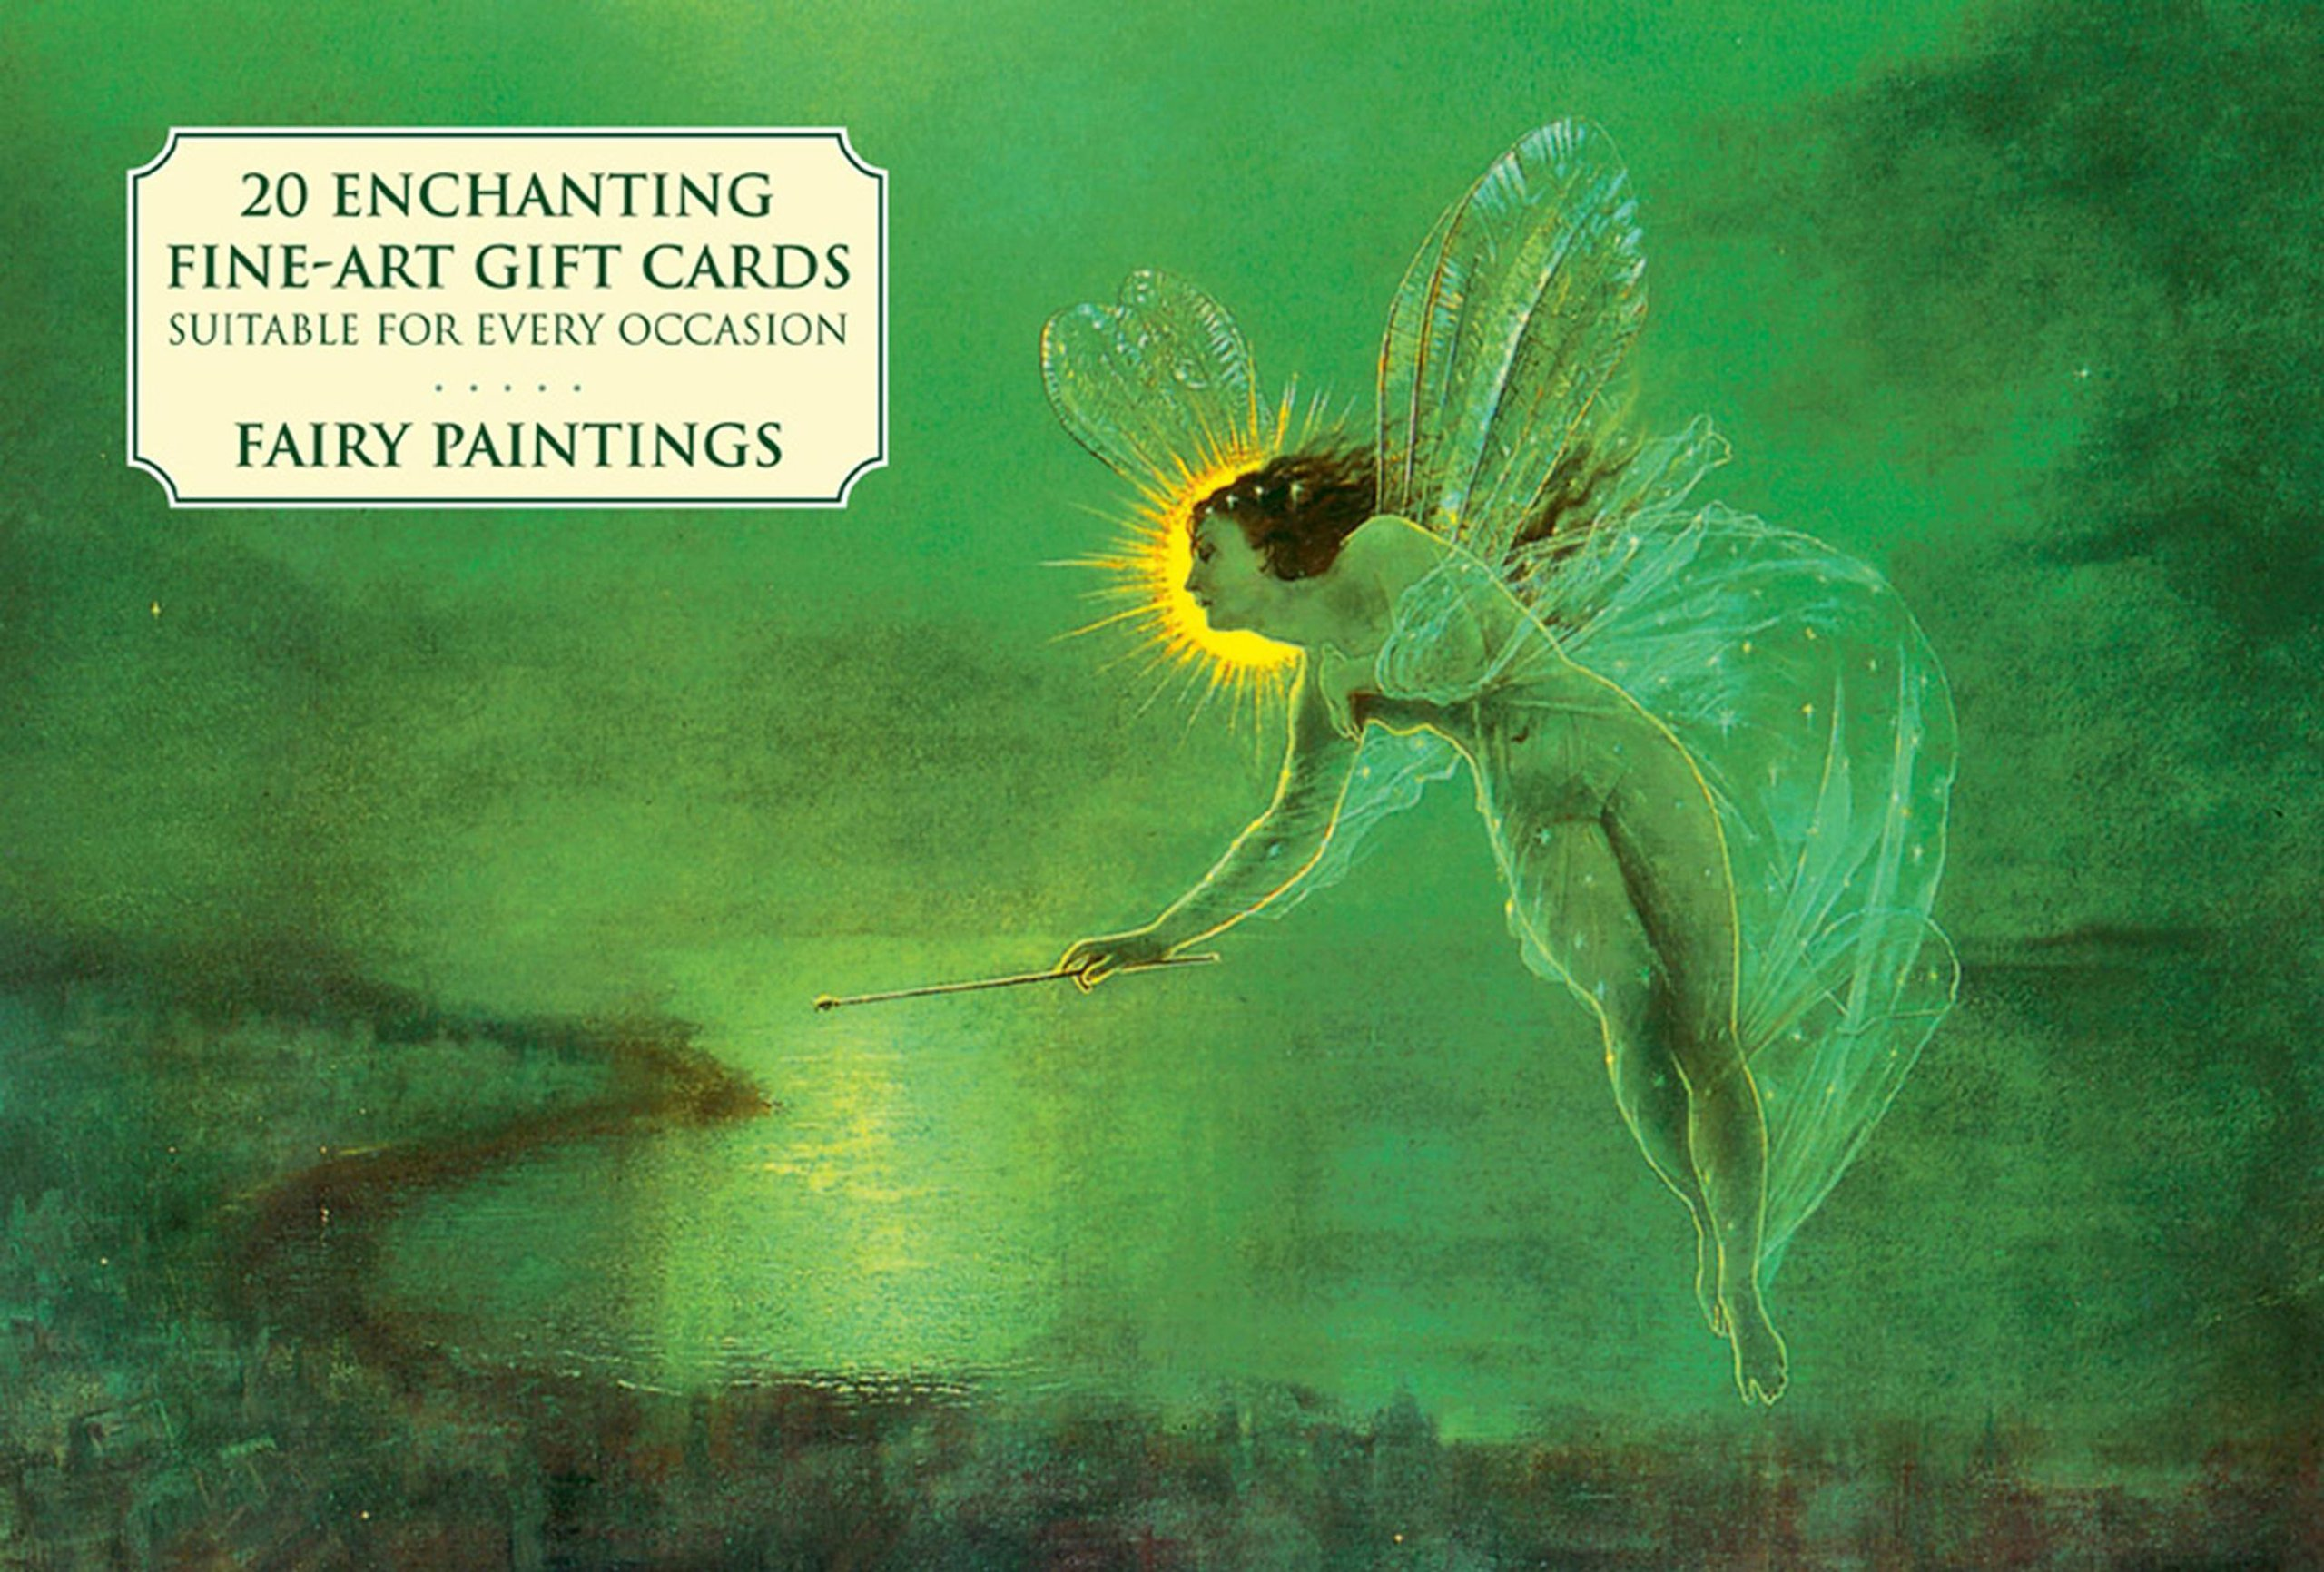 Card Box of 20 Notecards and Envelopes: Fairy Paintings: A delightful pack of high-quality fine-art gift cards and decorative envelopes.